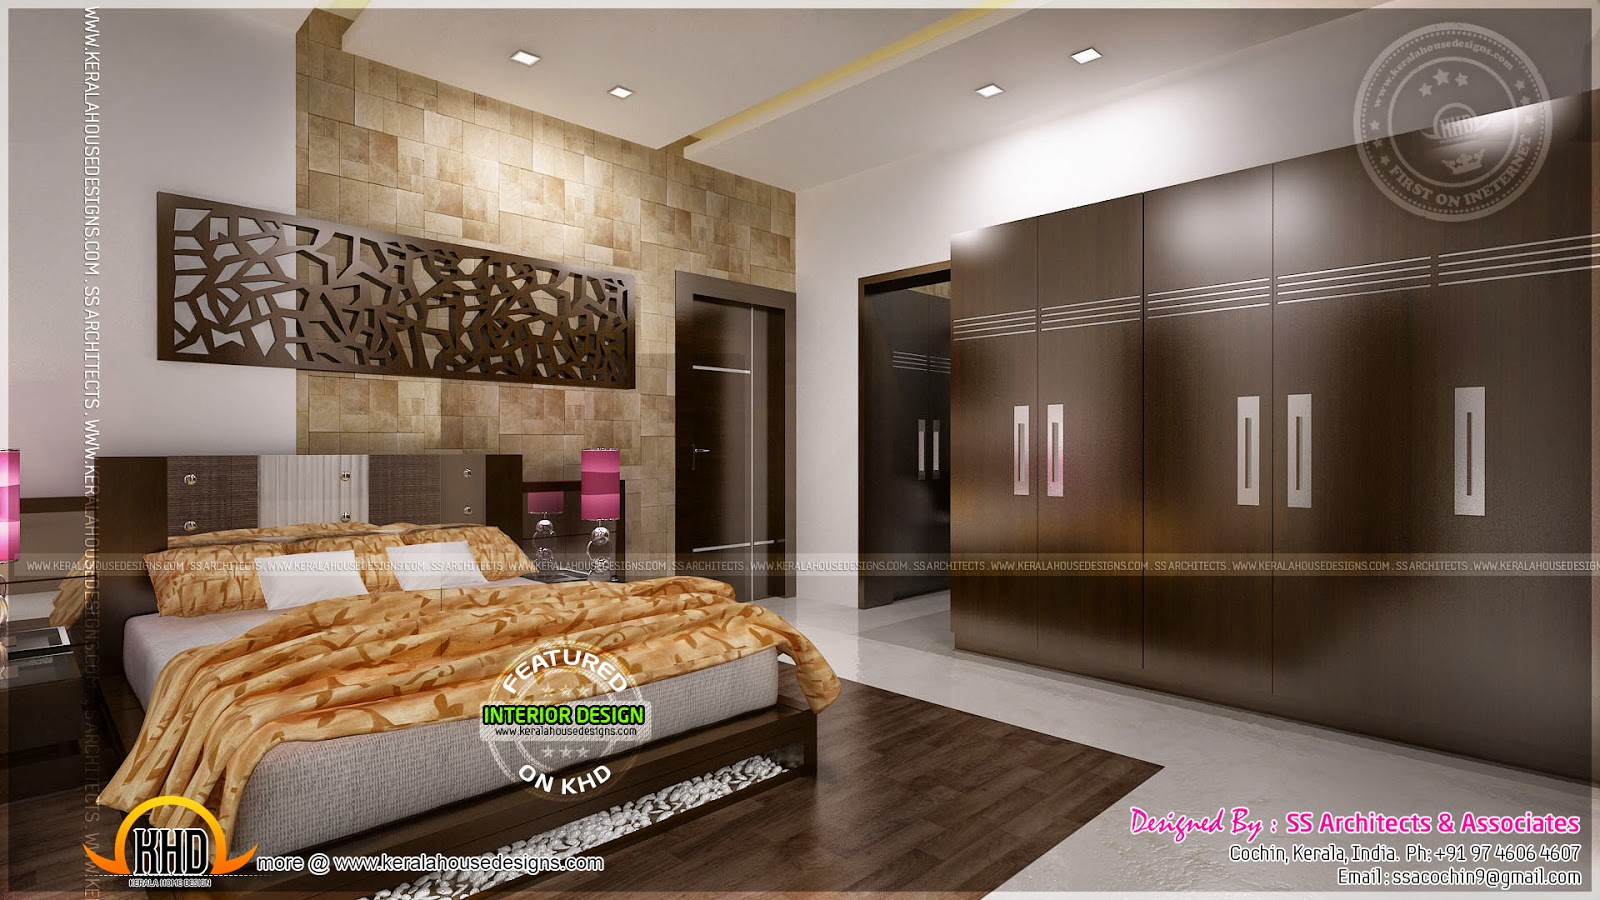 Awesome master bedroom interior kerala home design and floor plans - Interior bedroom design ...